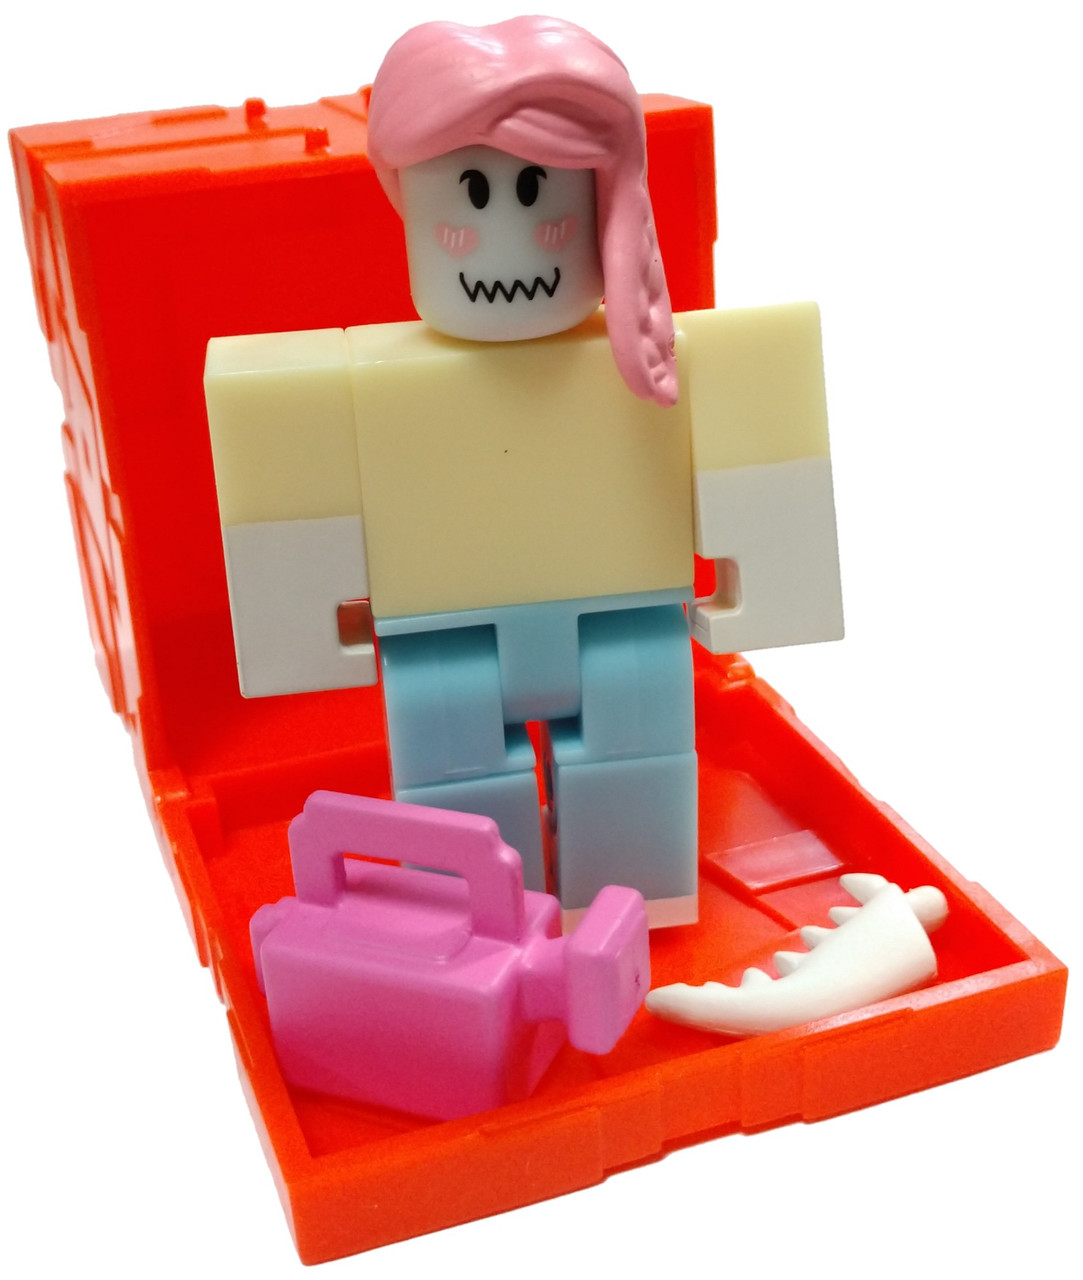 Roblox Series 3 Patient Zero Mini Figure Without Code No Packaging - Roblox Series 6 Gardening Simulator Priscilla Mini Figure With Orange Cube And Online Code Loose